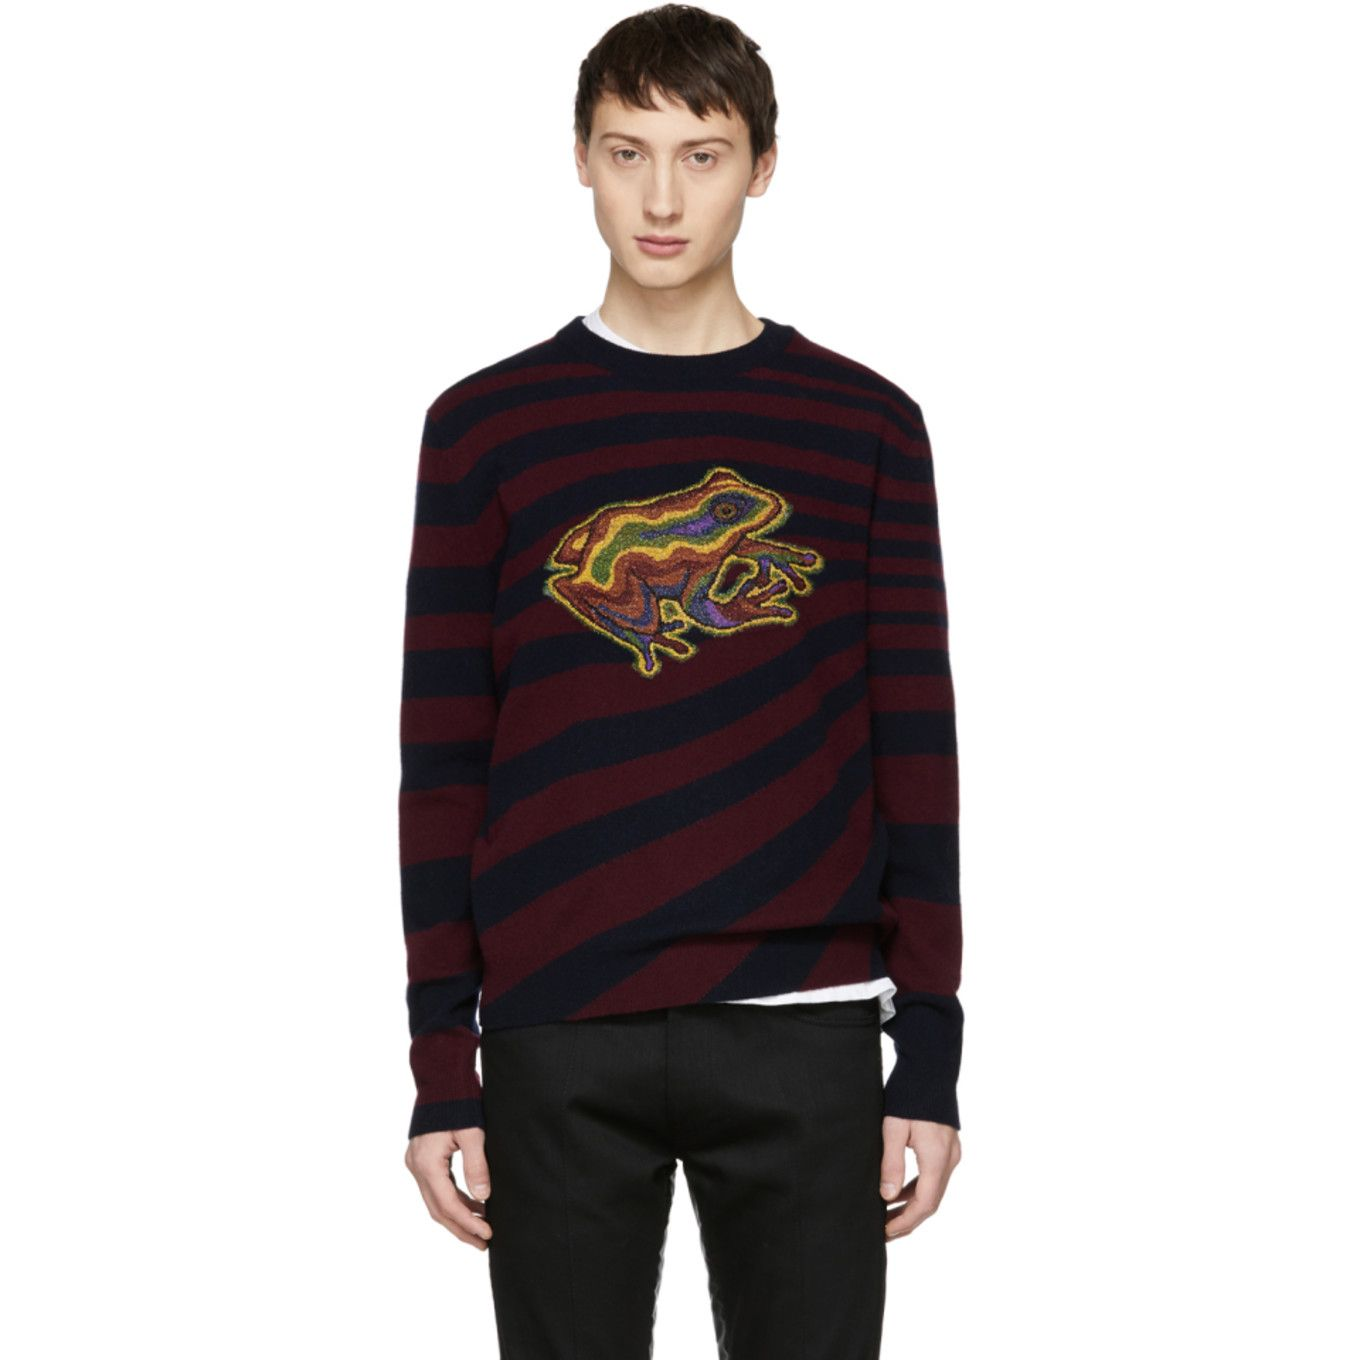 583515675665 Paul Smith - Burgundy   Navy Wool Frog Sweater